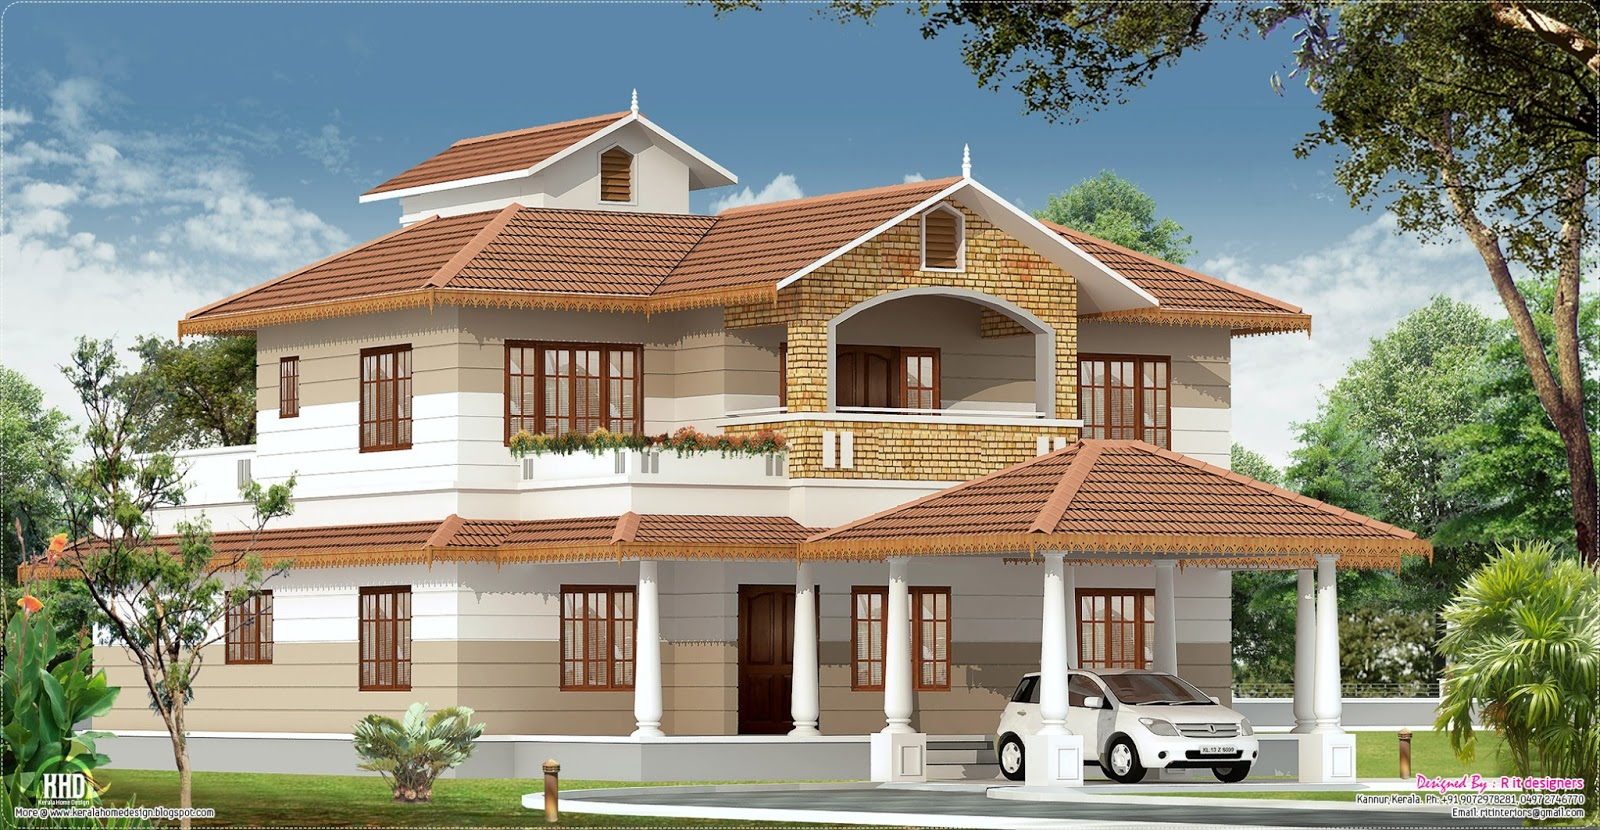 2700 kerala home with interior designs kerala for Home design 4u kerala